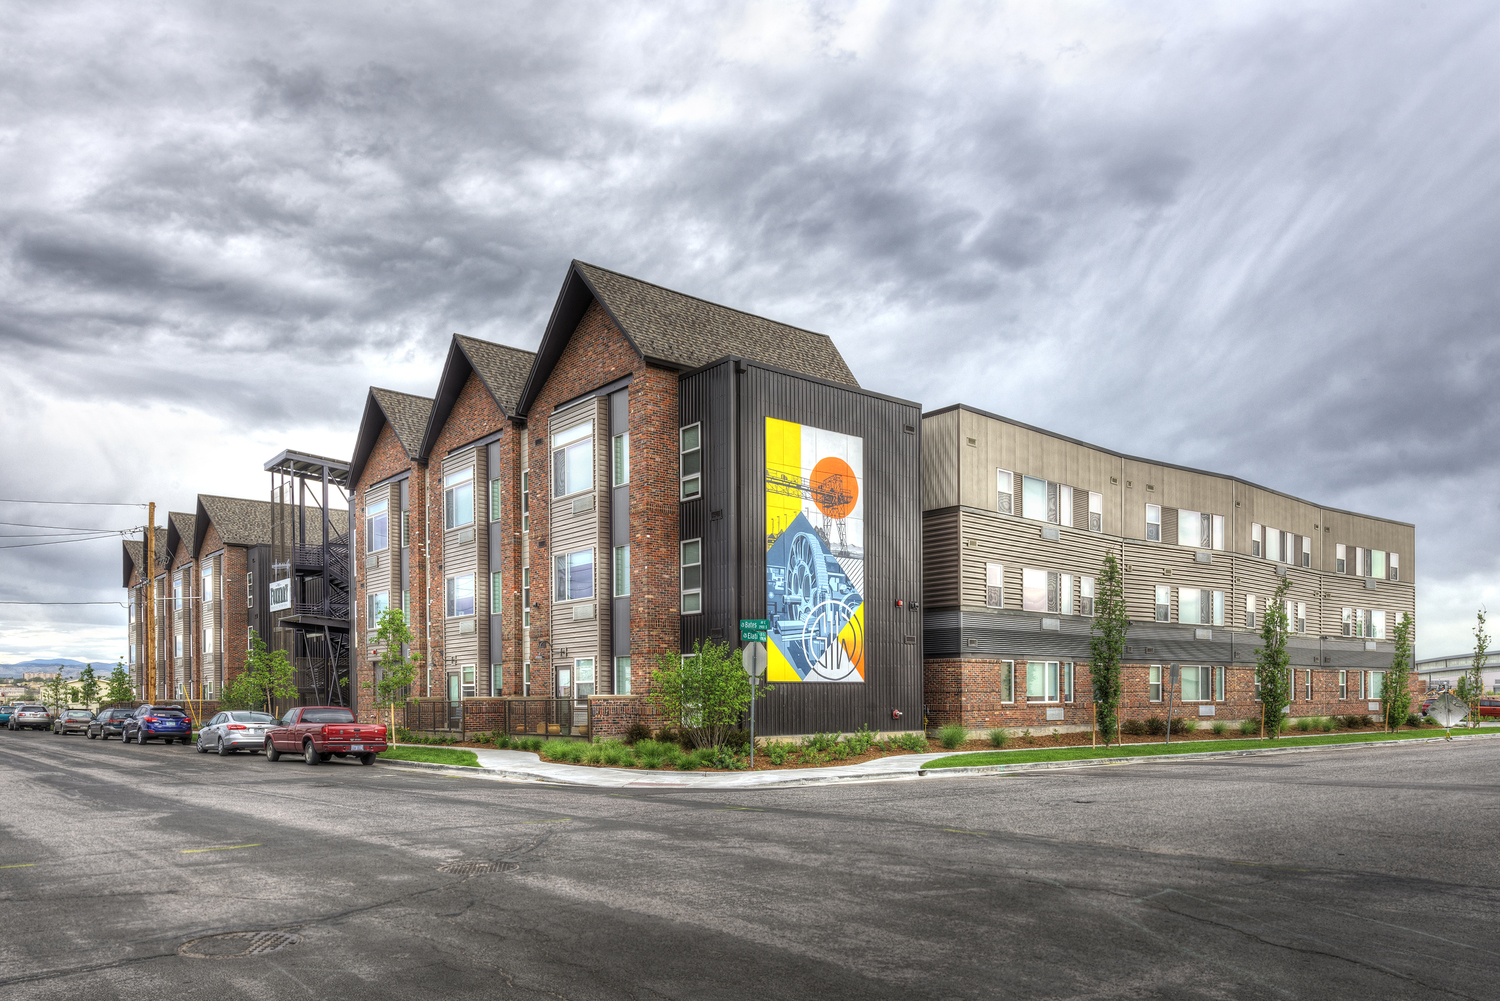 Image of Foundry Apartments in Englewood, Colorado